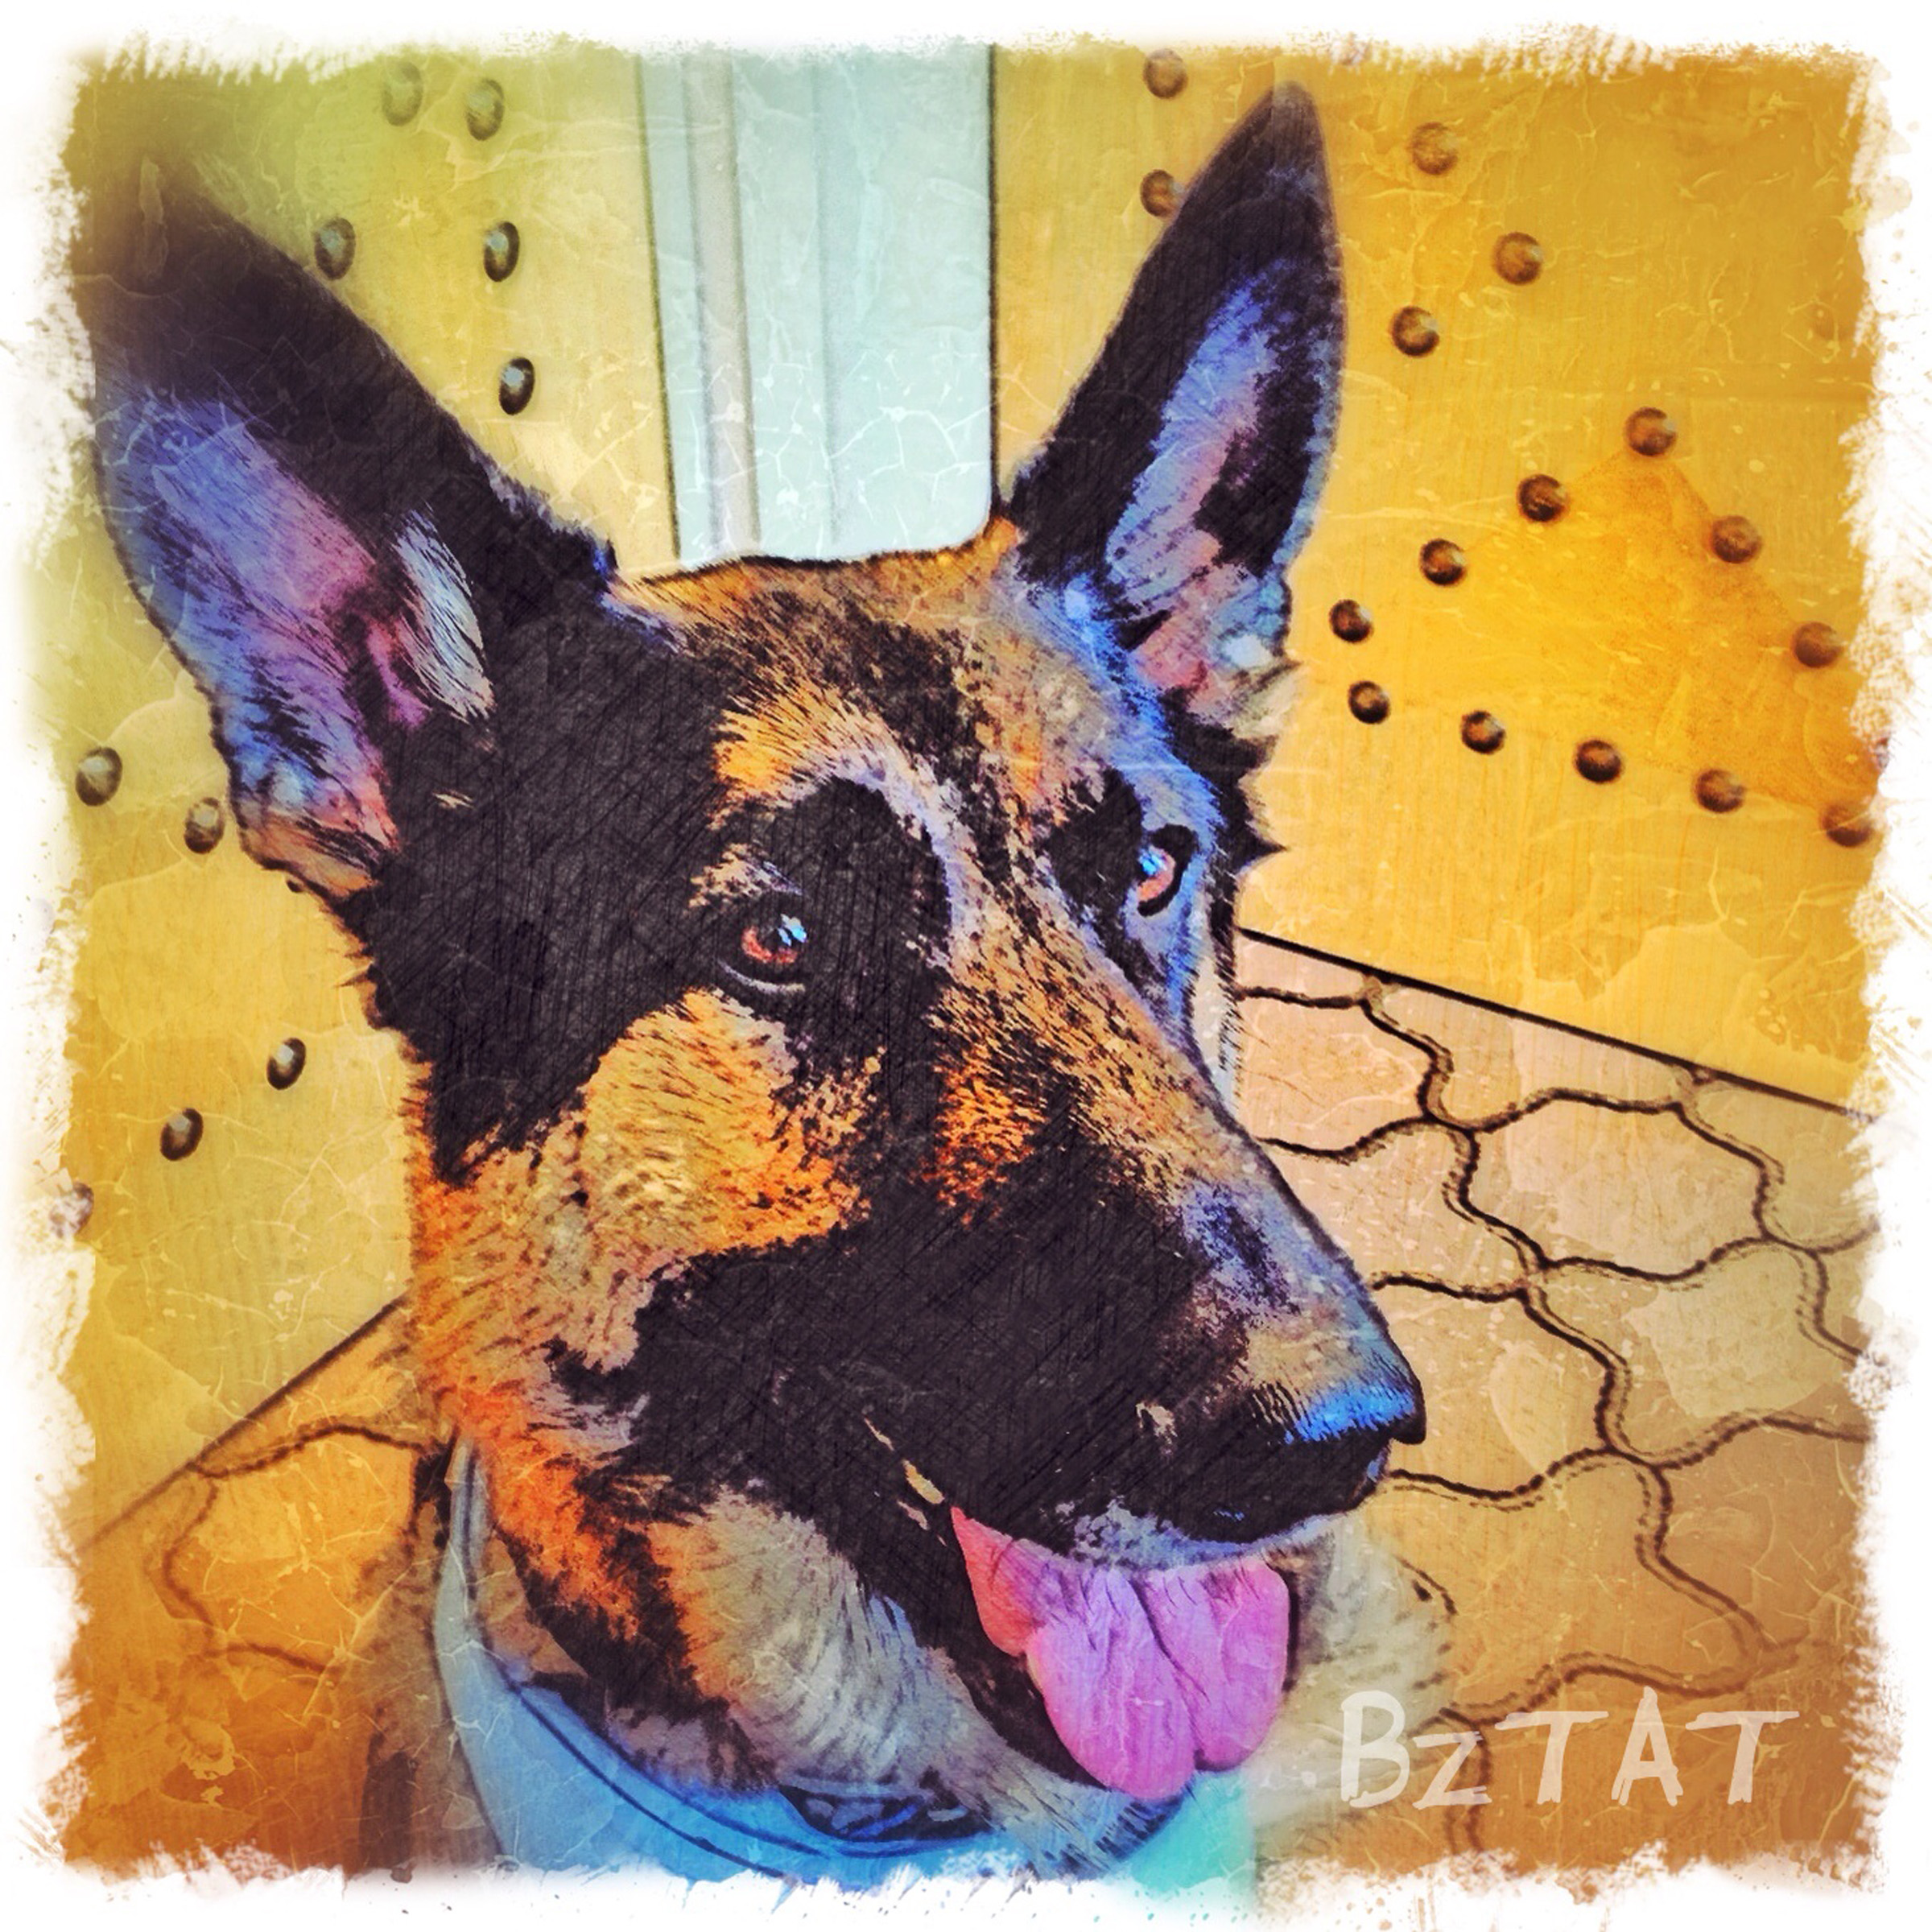 9-Digital-pet-portrait-dog-art-calendar-BZTAT